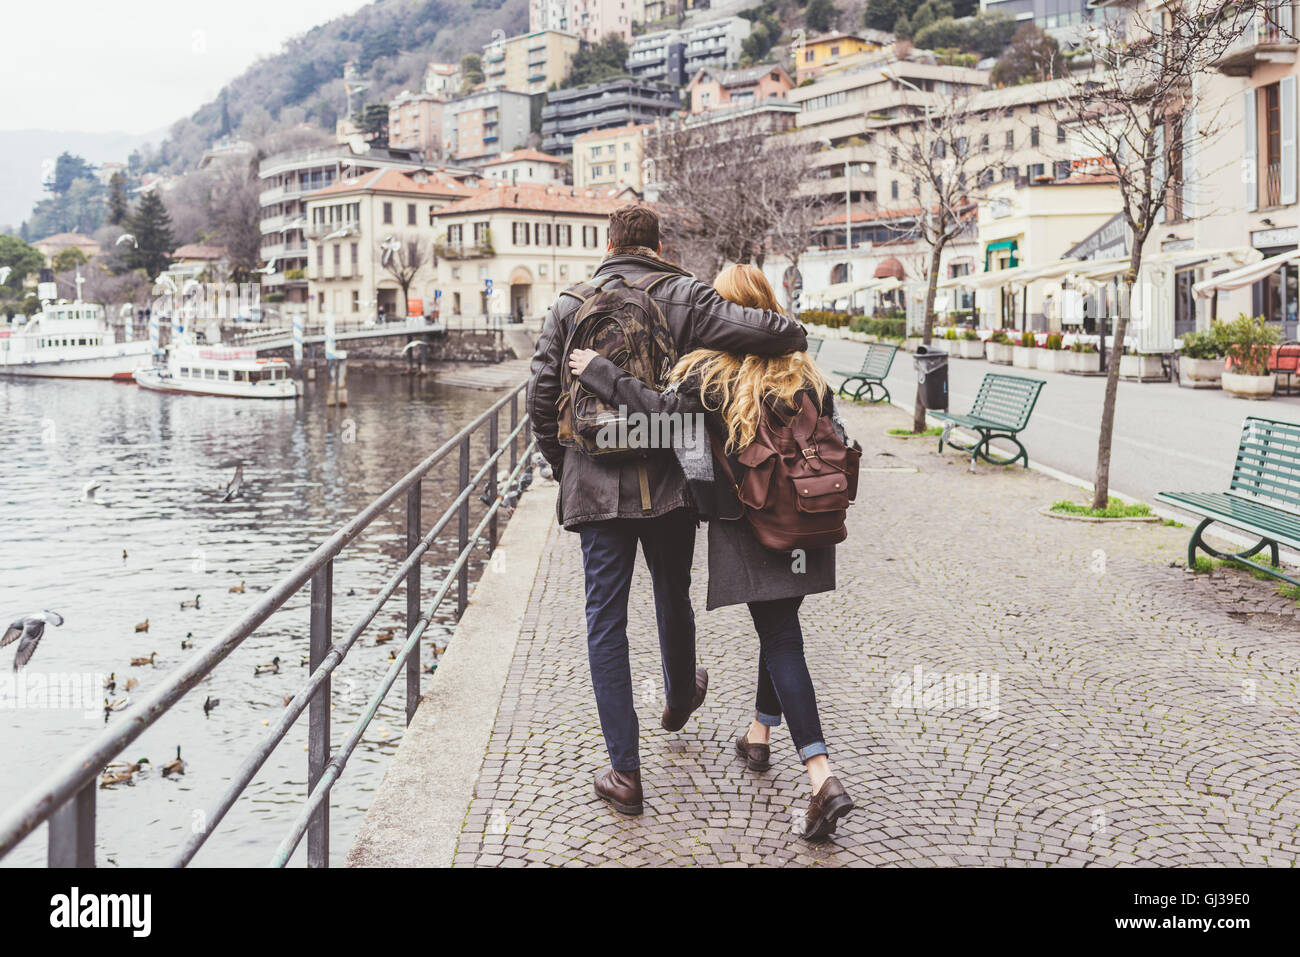 Rear view of young couple strolling along lakeside, Lake Como, Italy Stock Photo